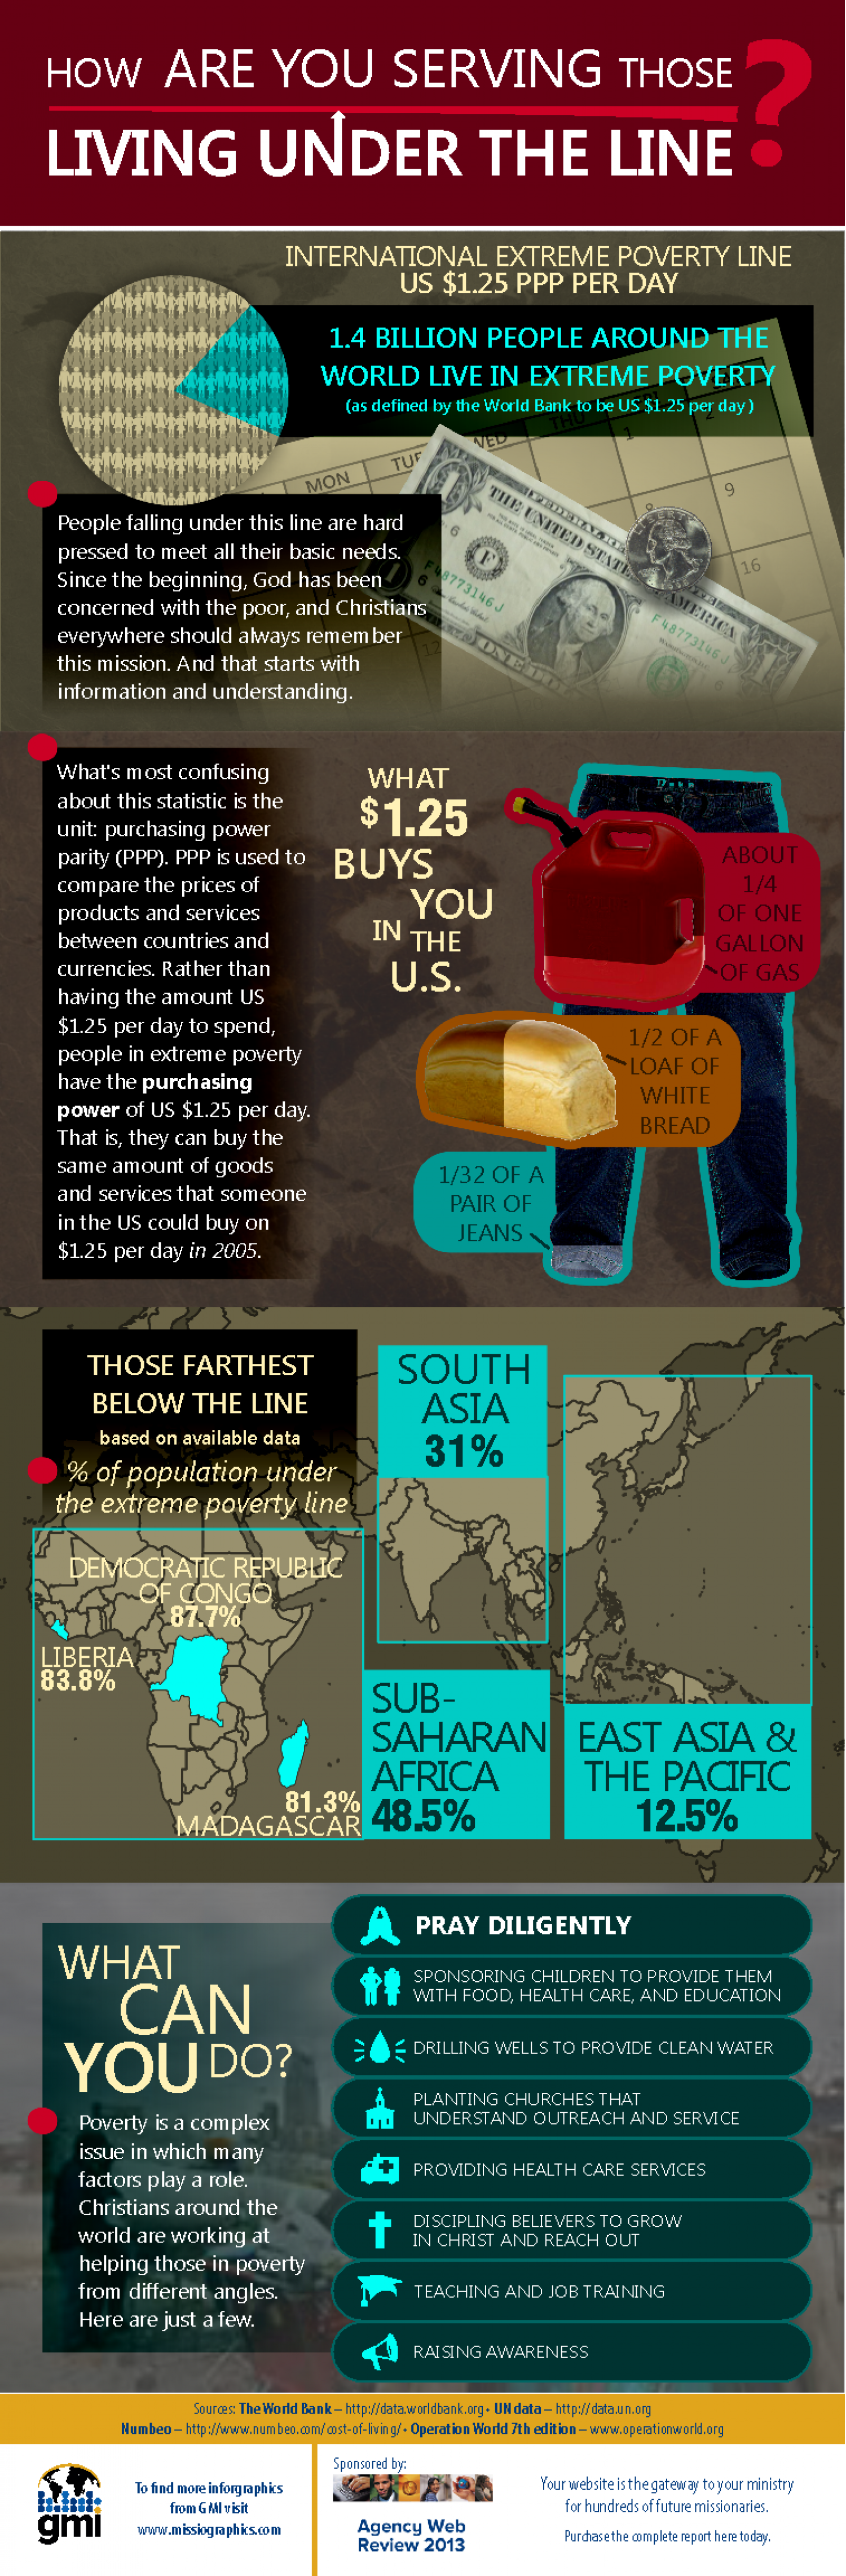 How are You Serving Those Living Under the Line? Infographic